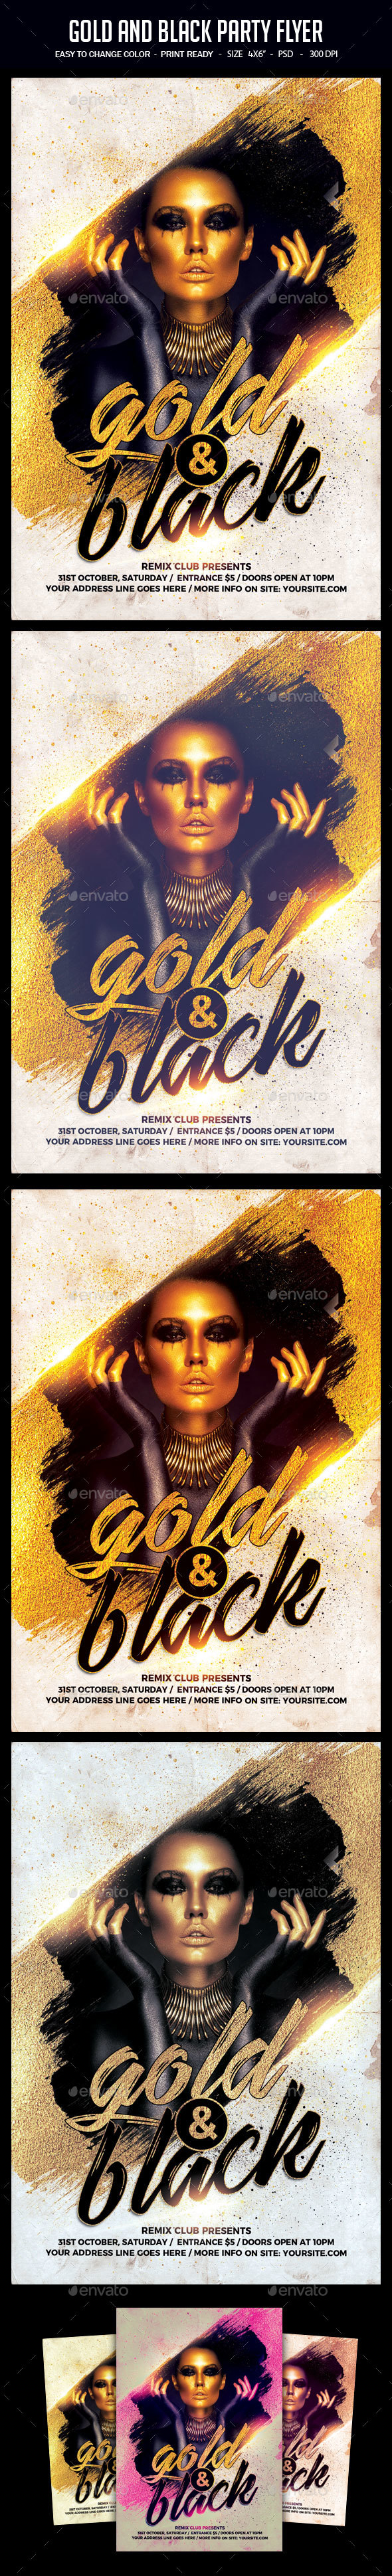 Gold And Black Party Flyer - Clubs & Parties Events